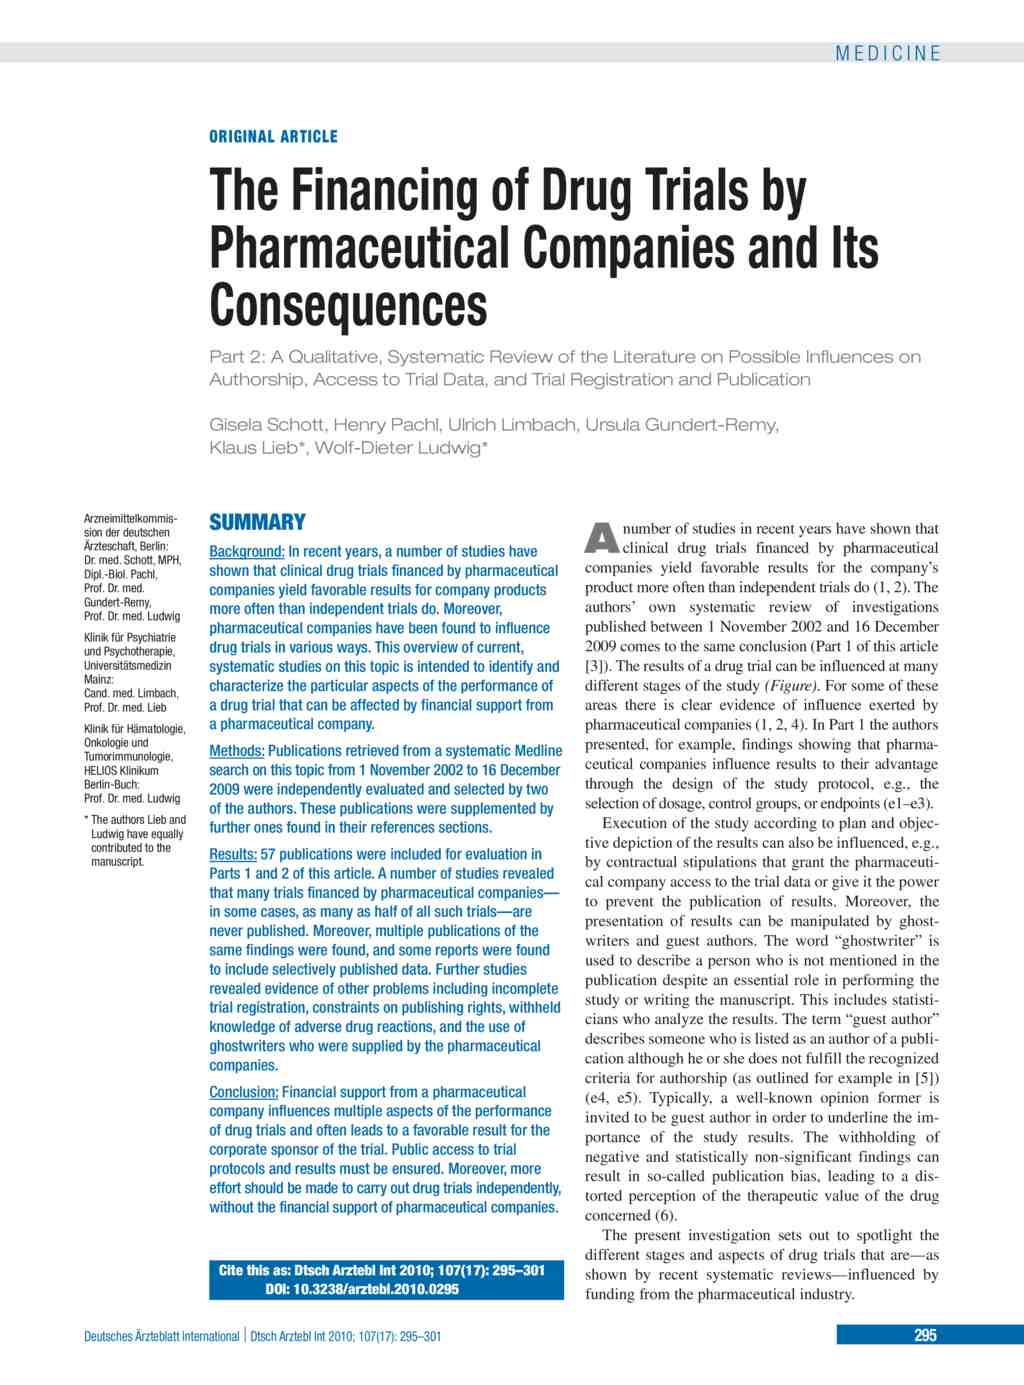 The Financing of Drug Trials by Pharmaceutical Companies and Its ...